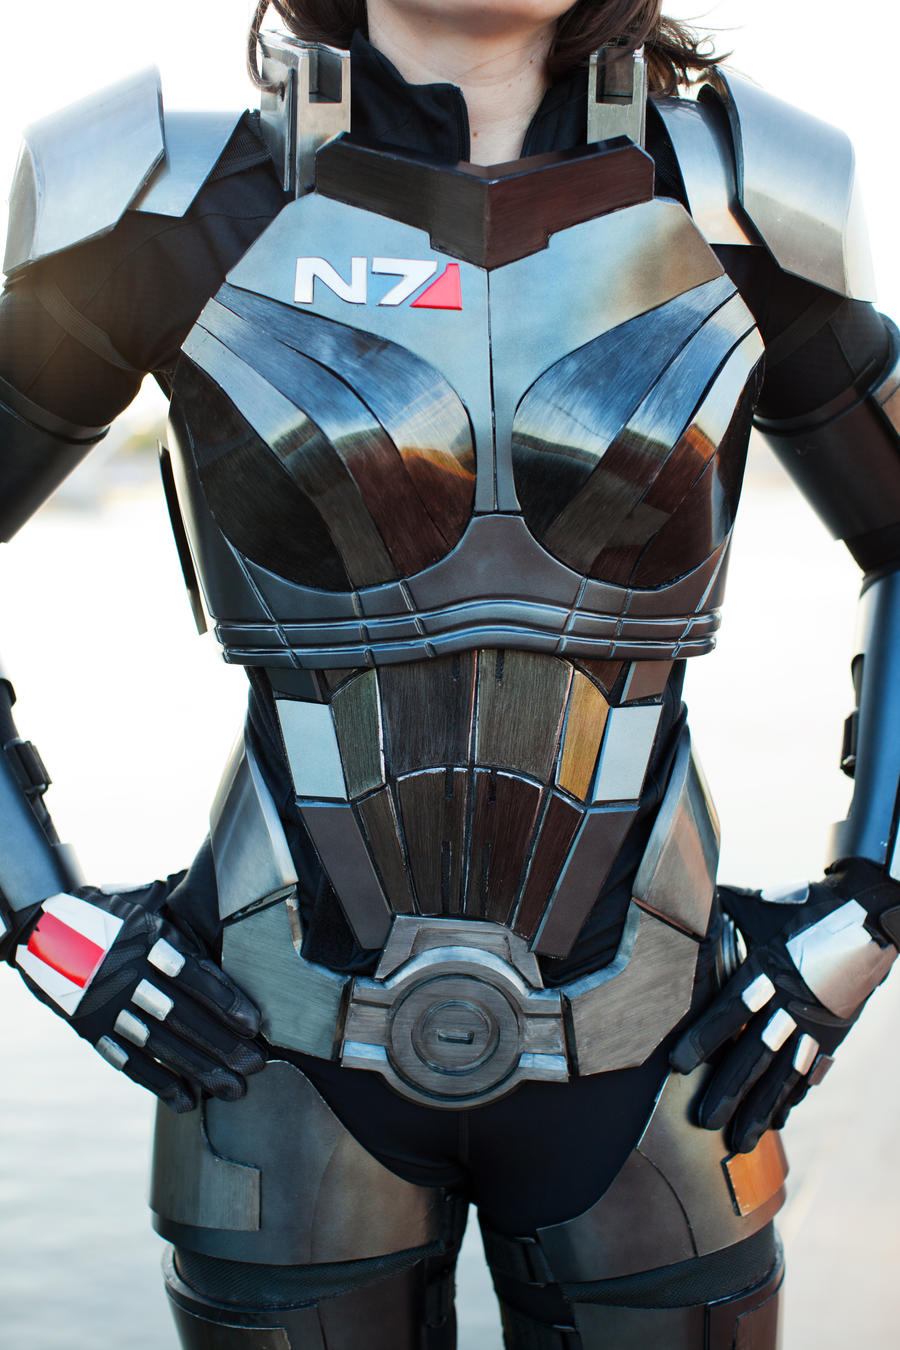 Mass effect 3 n7 armor femshep by naughtyzoot on deviantart for Mass effect 3 n7 armor template